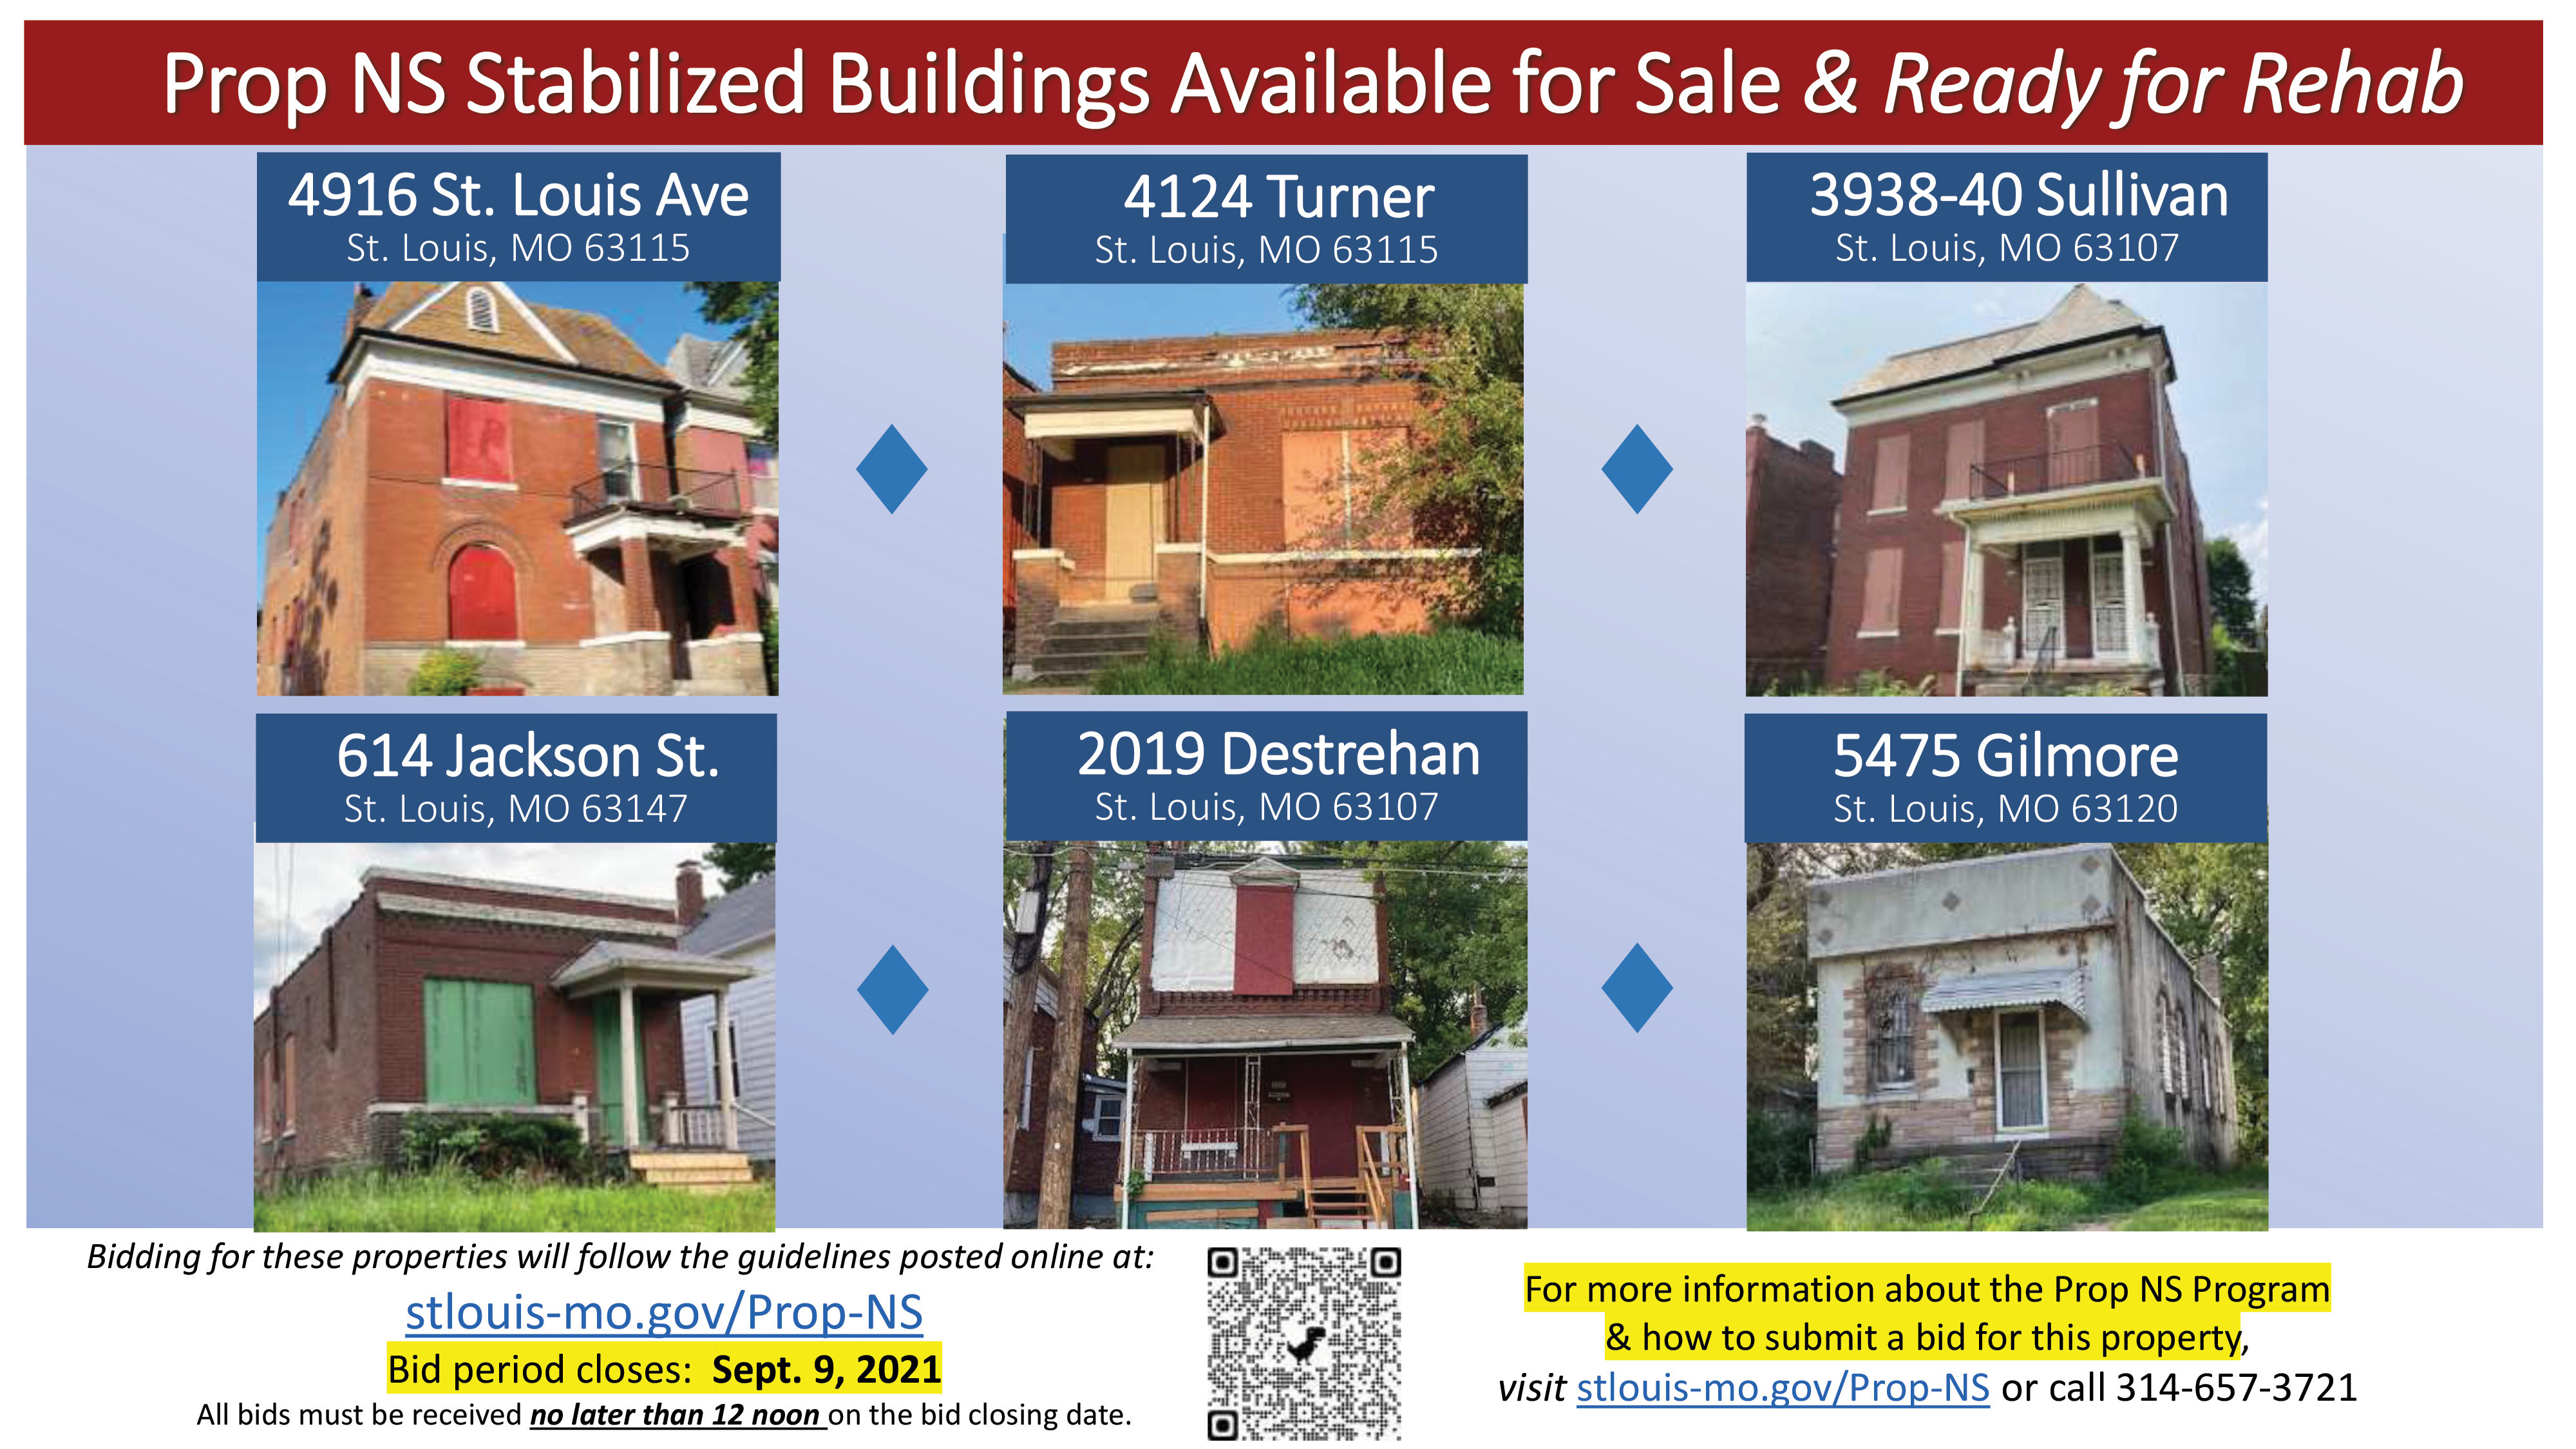 New round of Prop NS-stabilized buildings now open for offers through Sept. 9 at noon